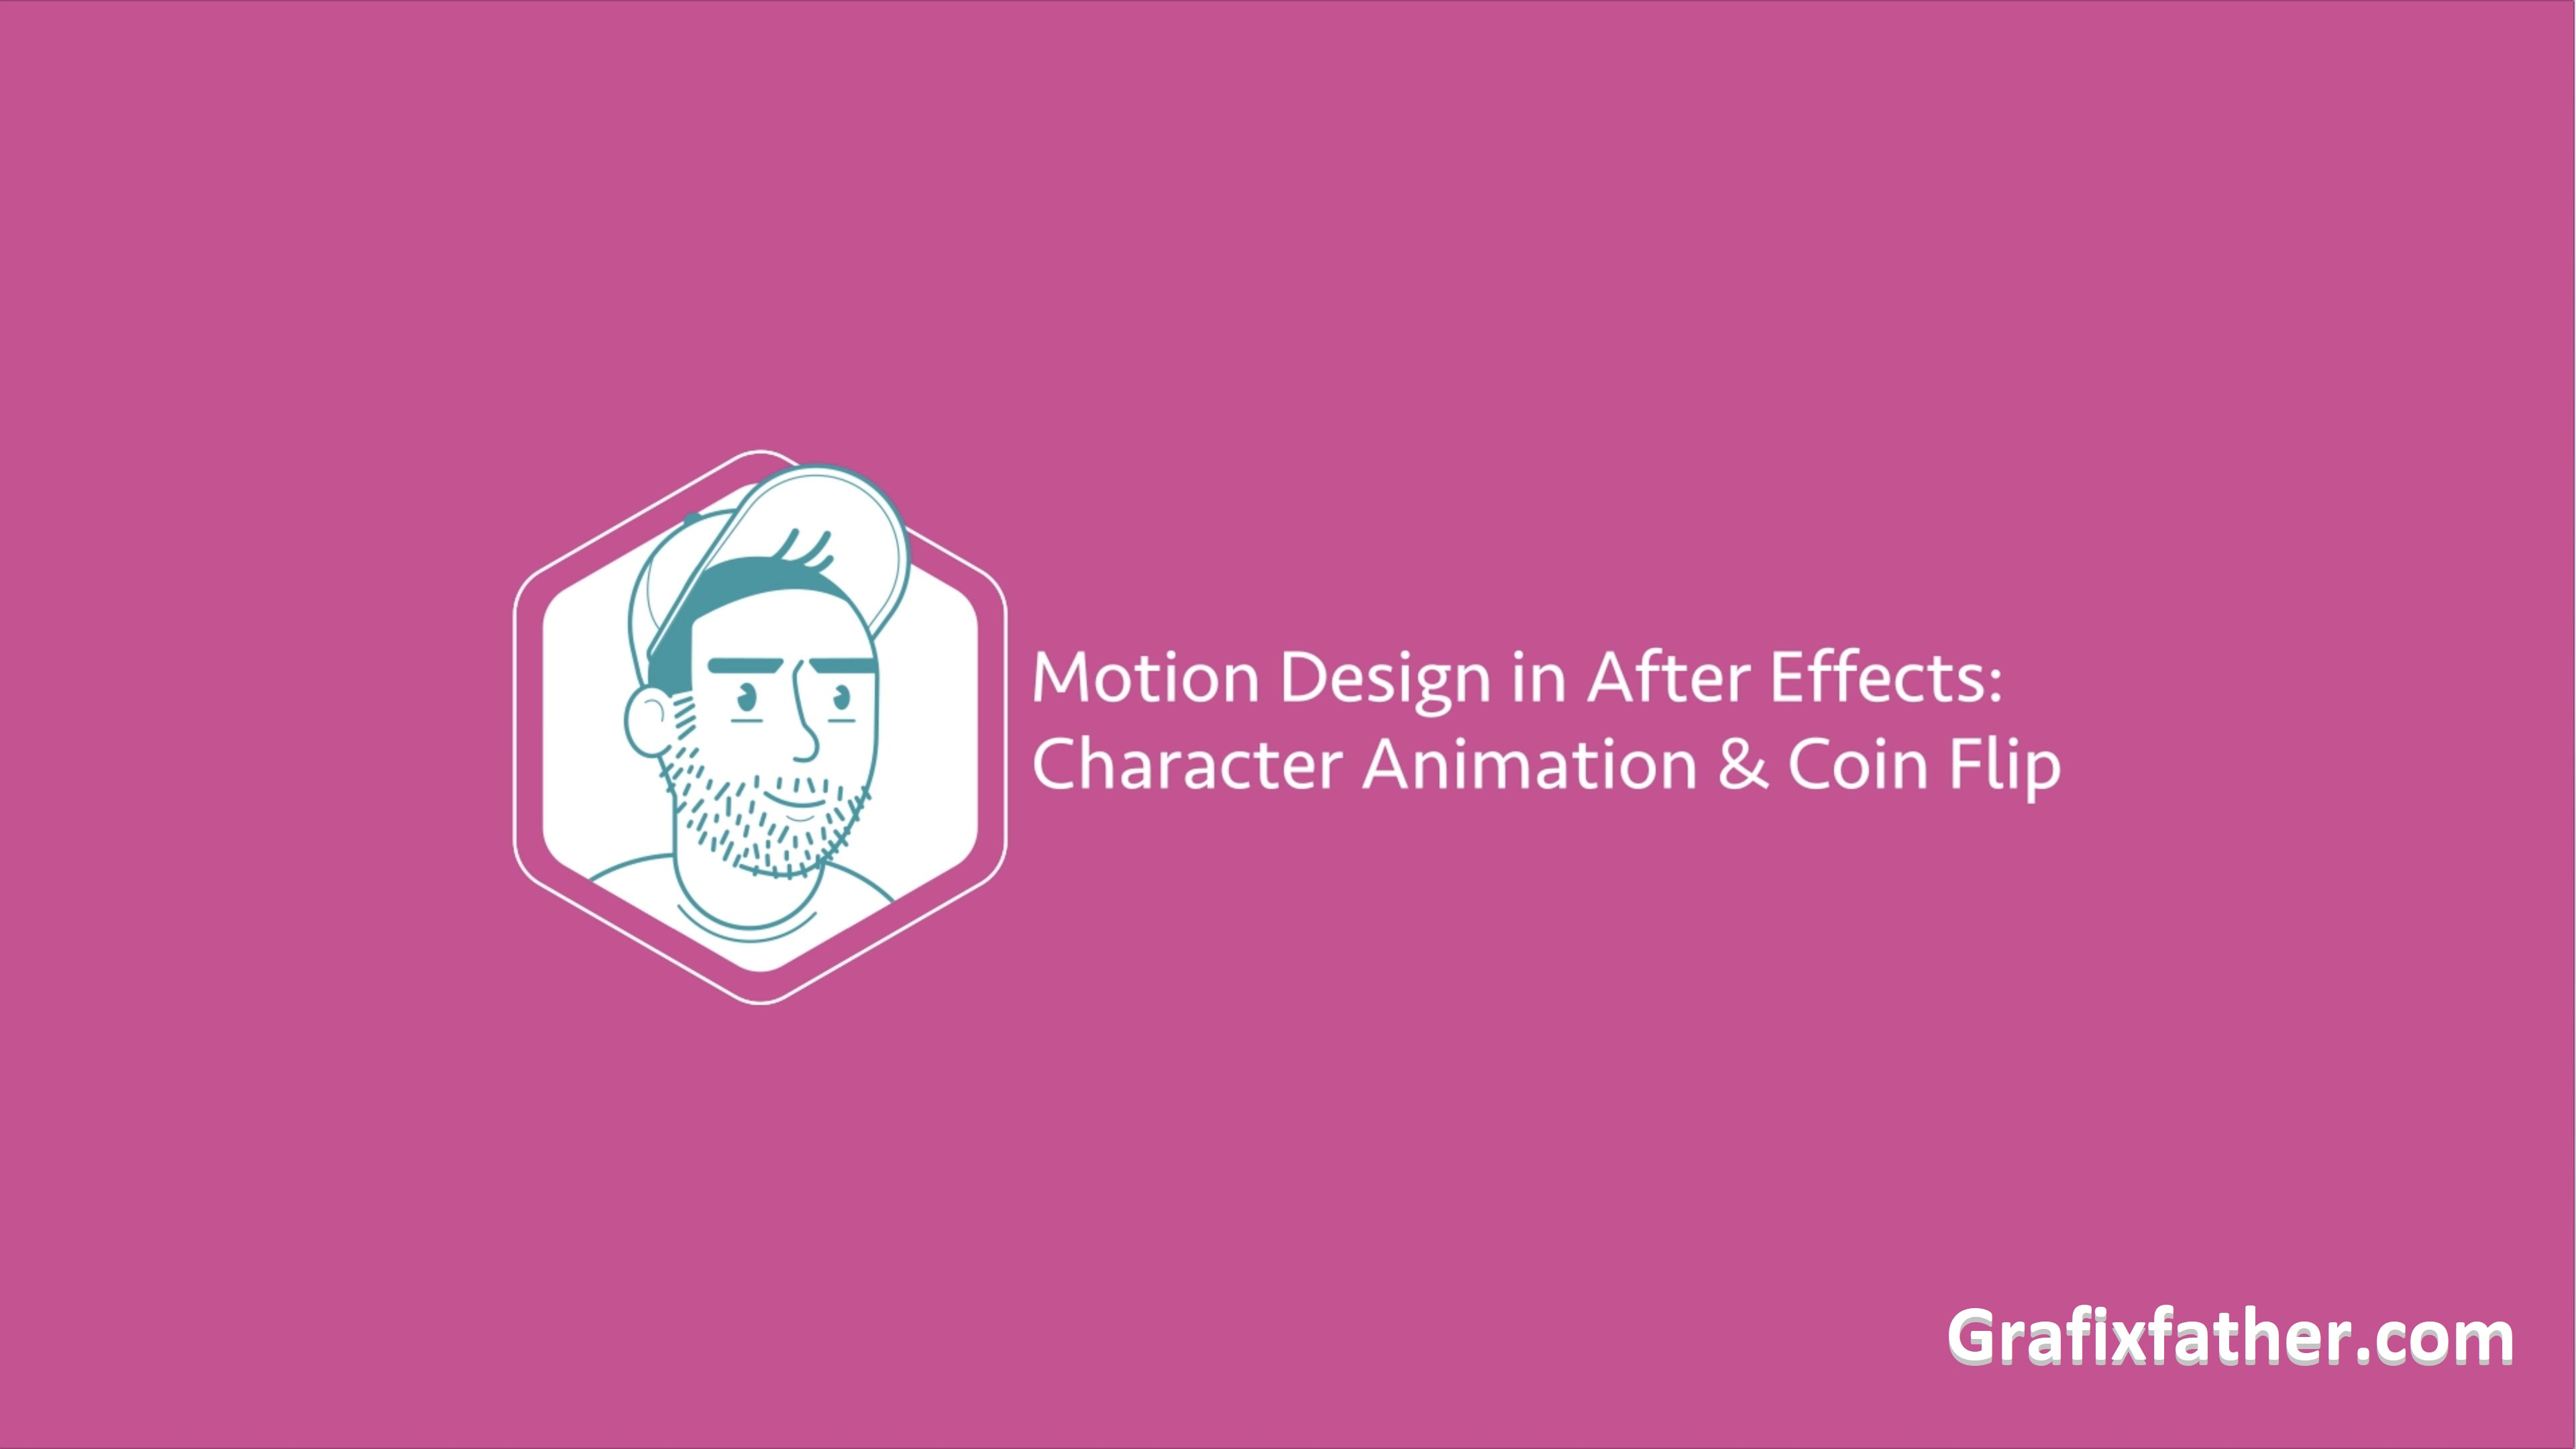 Motion Design in After Effects - Character Animation and Coin Flip